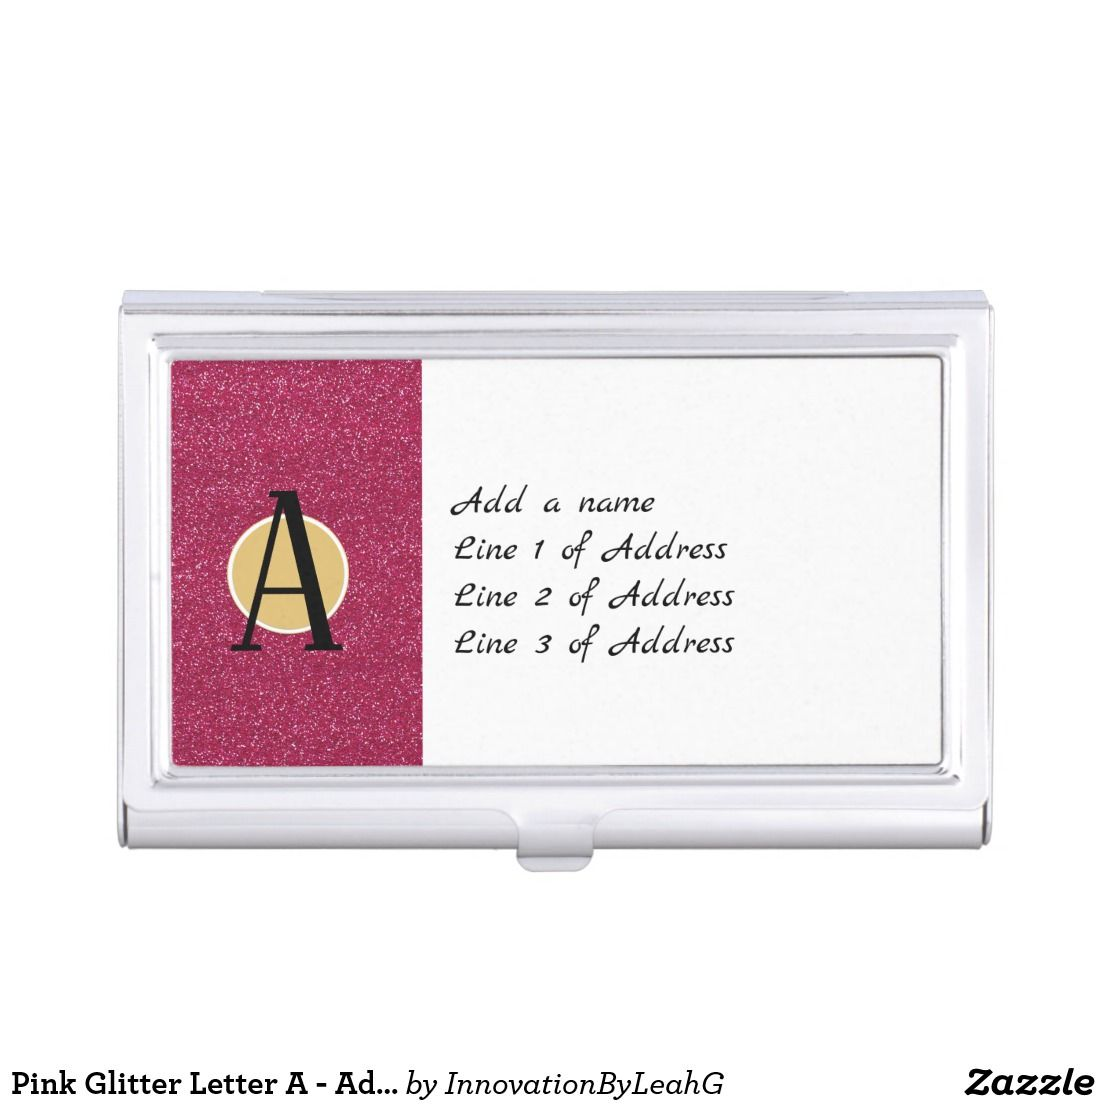 Pink glitter letter a add any initial monogram business card pink glitter letter a add any initial monogram business card case magicingreecefo Images